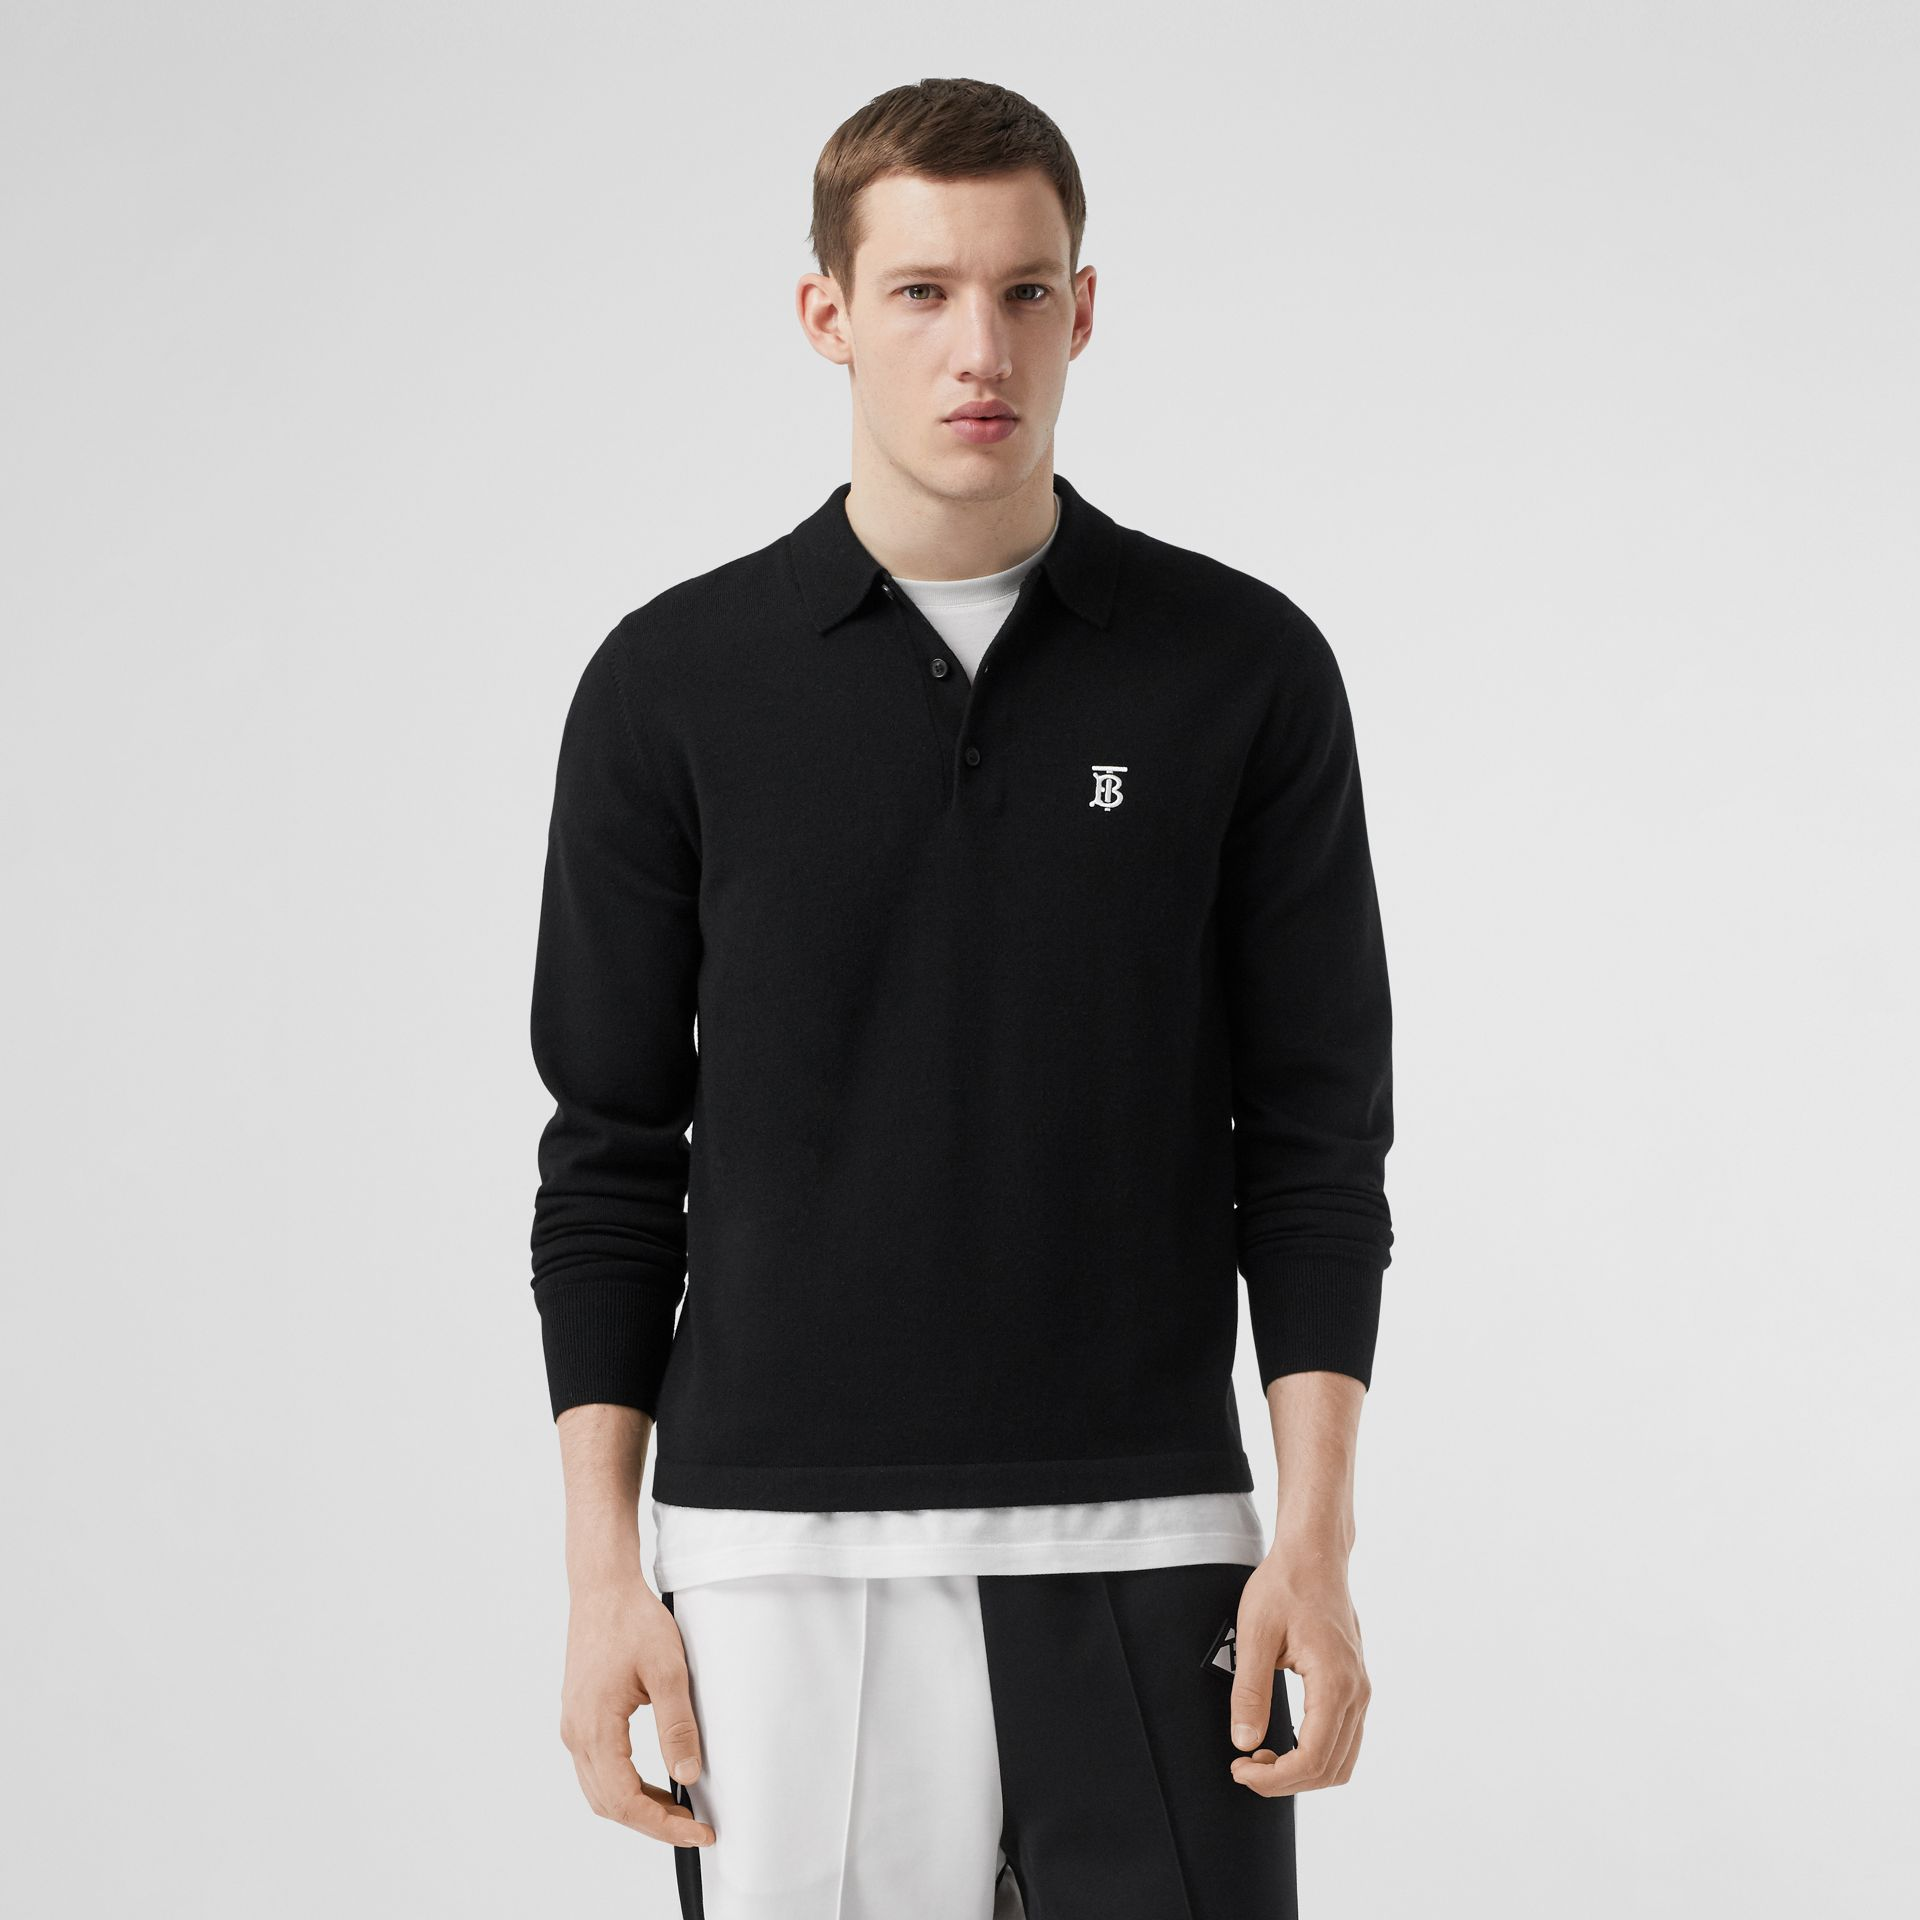 Long-sleeve Monogram Motif Merino Wool Polo Shirt in Black - Men | Burberry Canada - gallery image 4